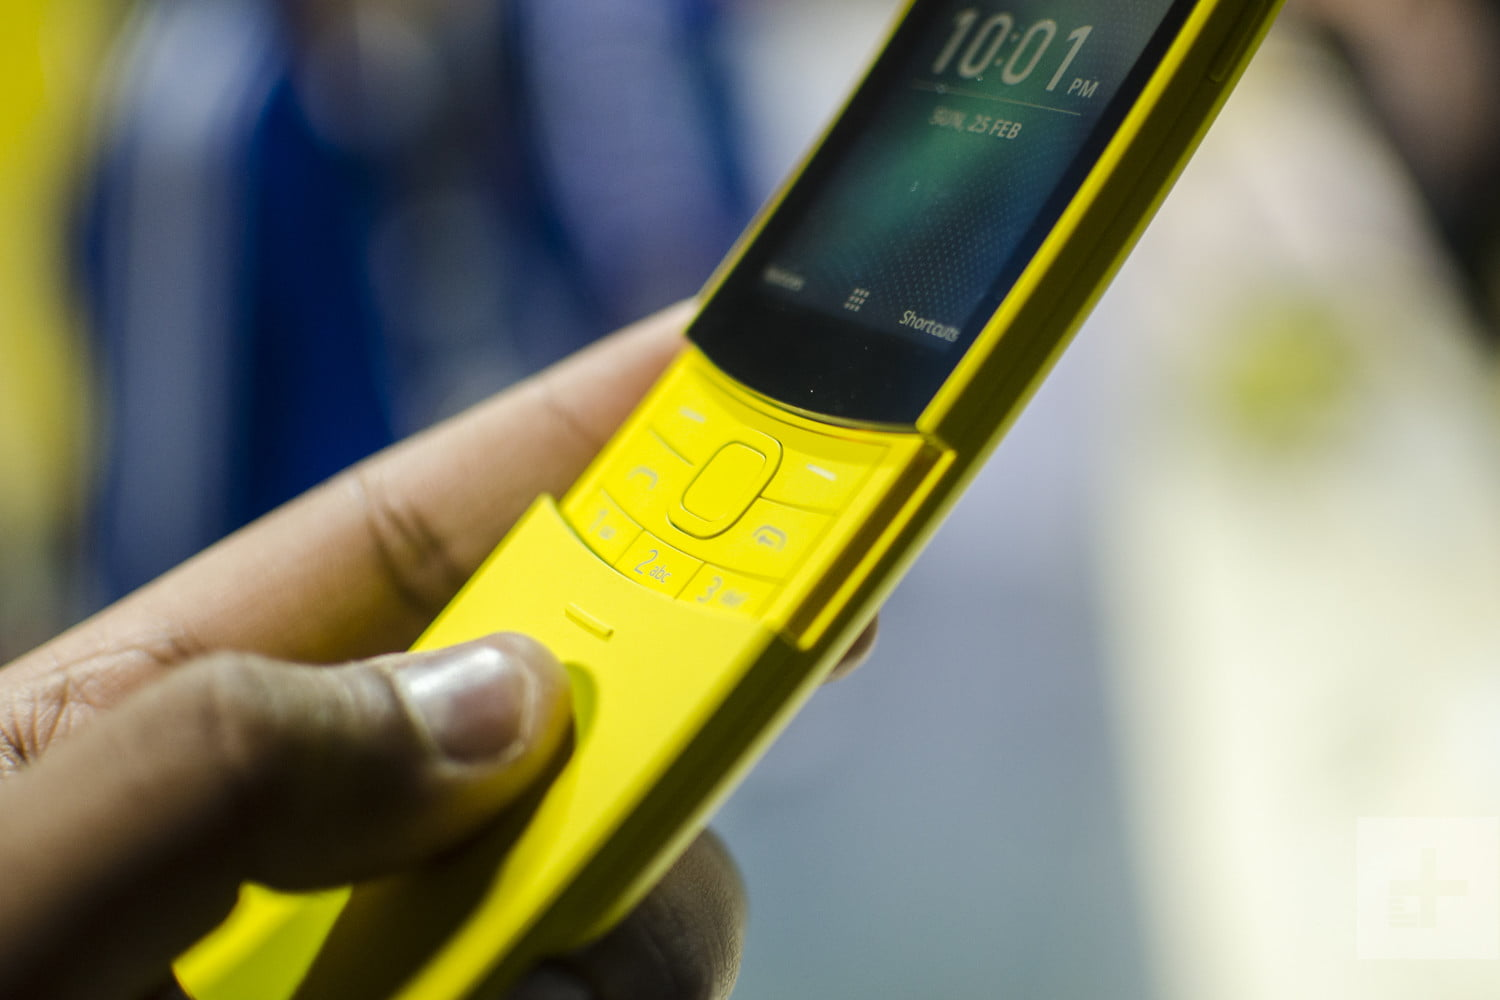 e496d0d8e243e0 Nokia 8110 4G Hands-on Review | Digital Trends